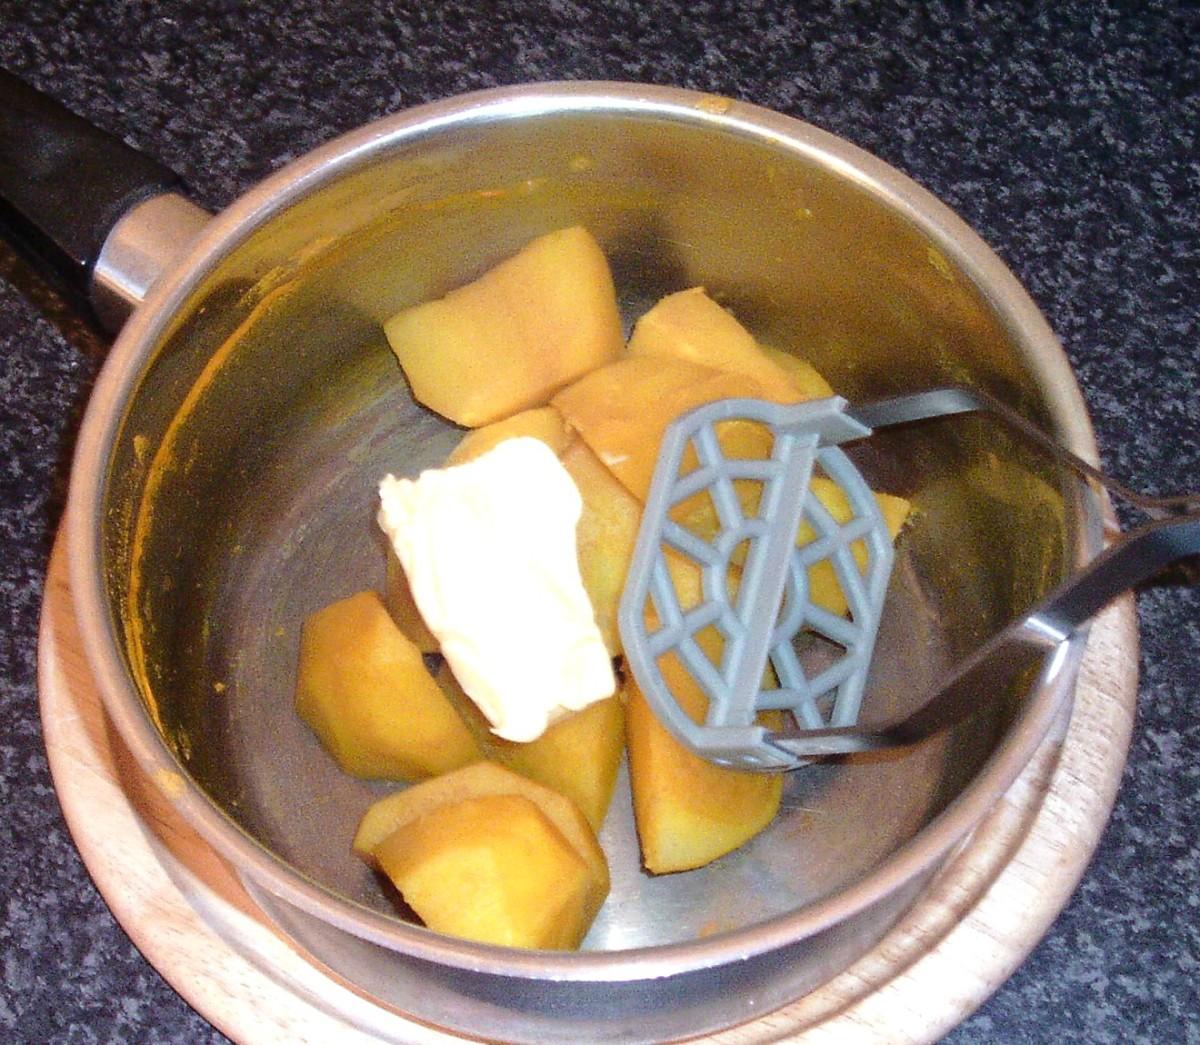 Turmeric potatoes are mashed with butter